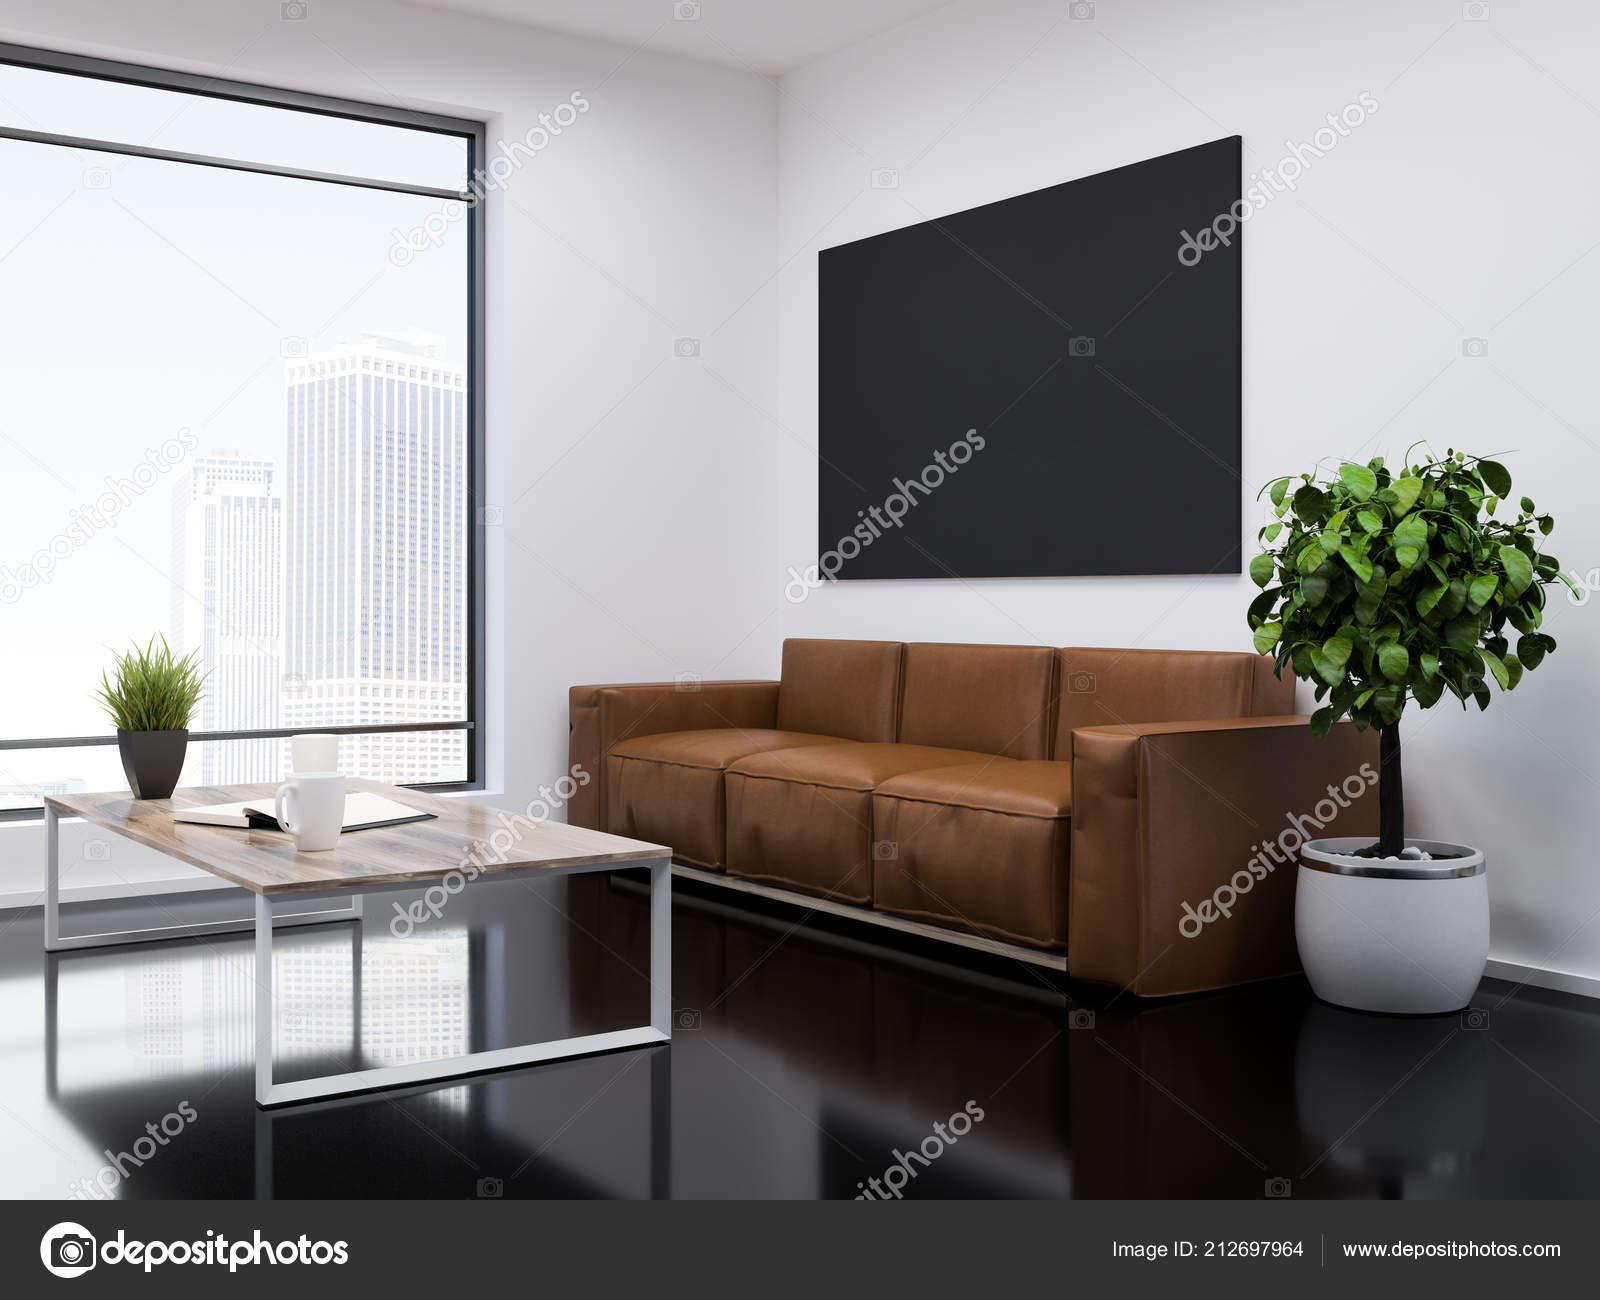 White wall office waiting room interior with a black glass like floor, a  long leather sofa and a coffee table. Loft window with modern cityscape.  Tree